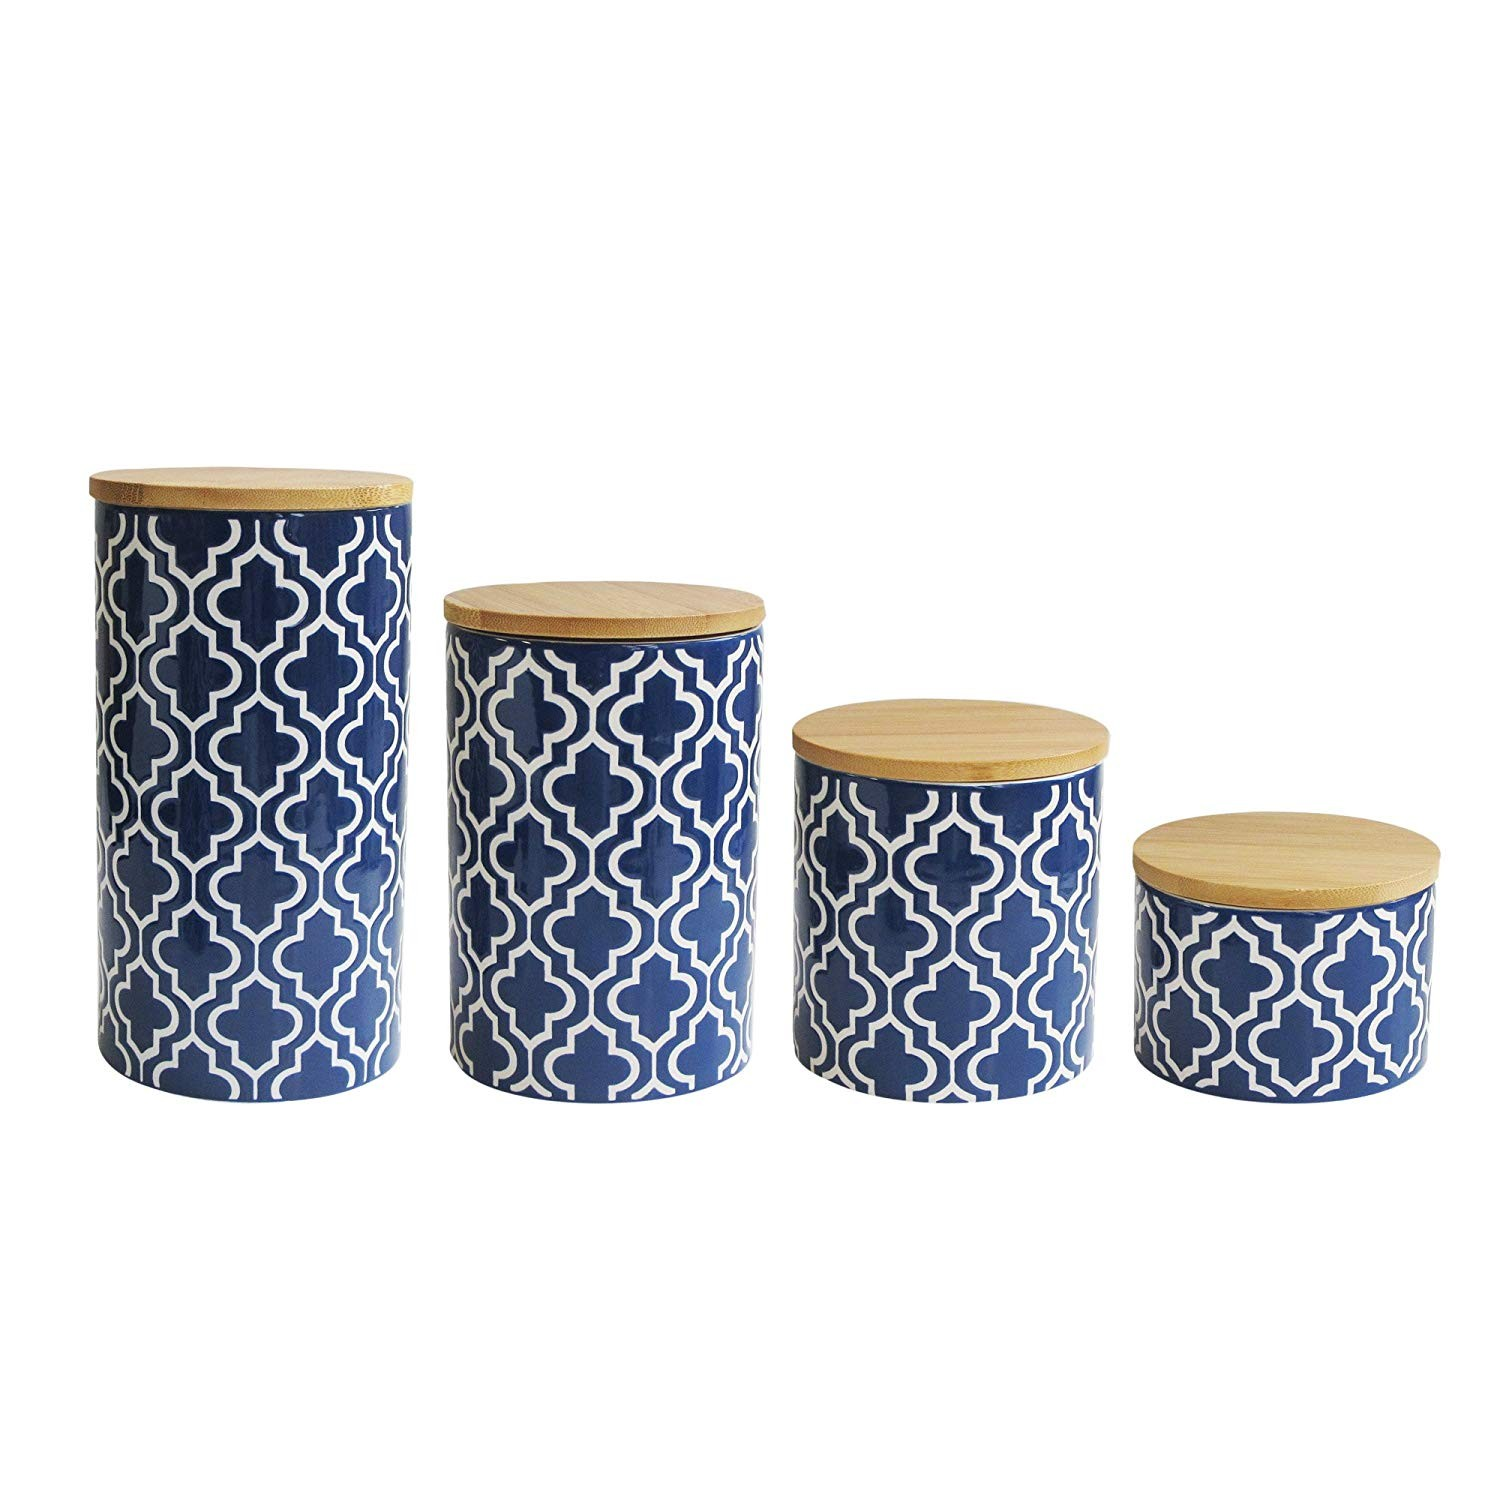 "American Atelier 5523-CAN-RB Quatrefoil Canister Set, 17"" x 4.2"" x 8"", Blue"